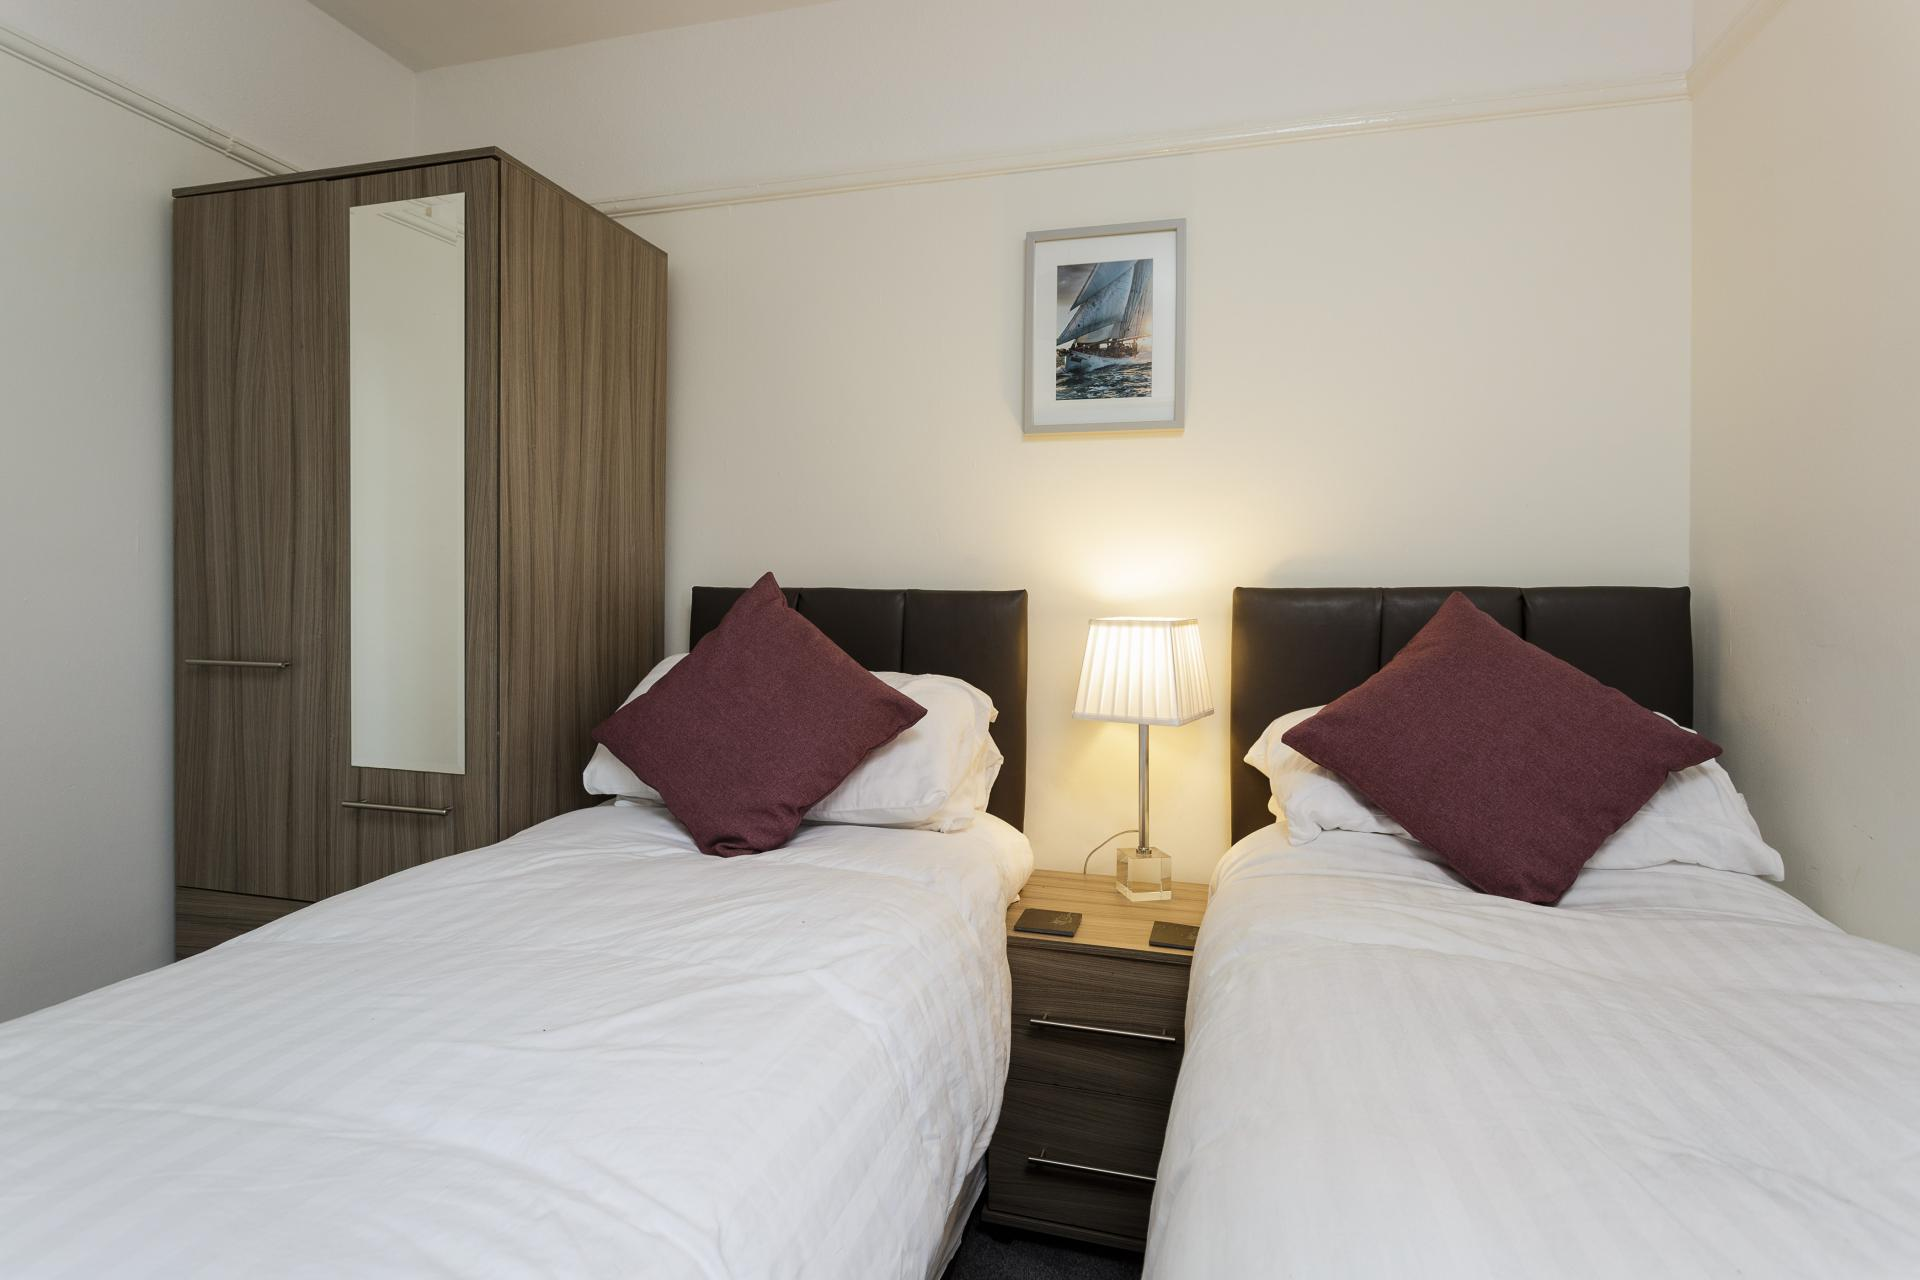 Twin beds at Braganza House Apartments, Old Portsmouth, Portsmouth